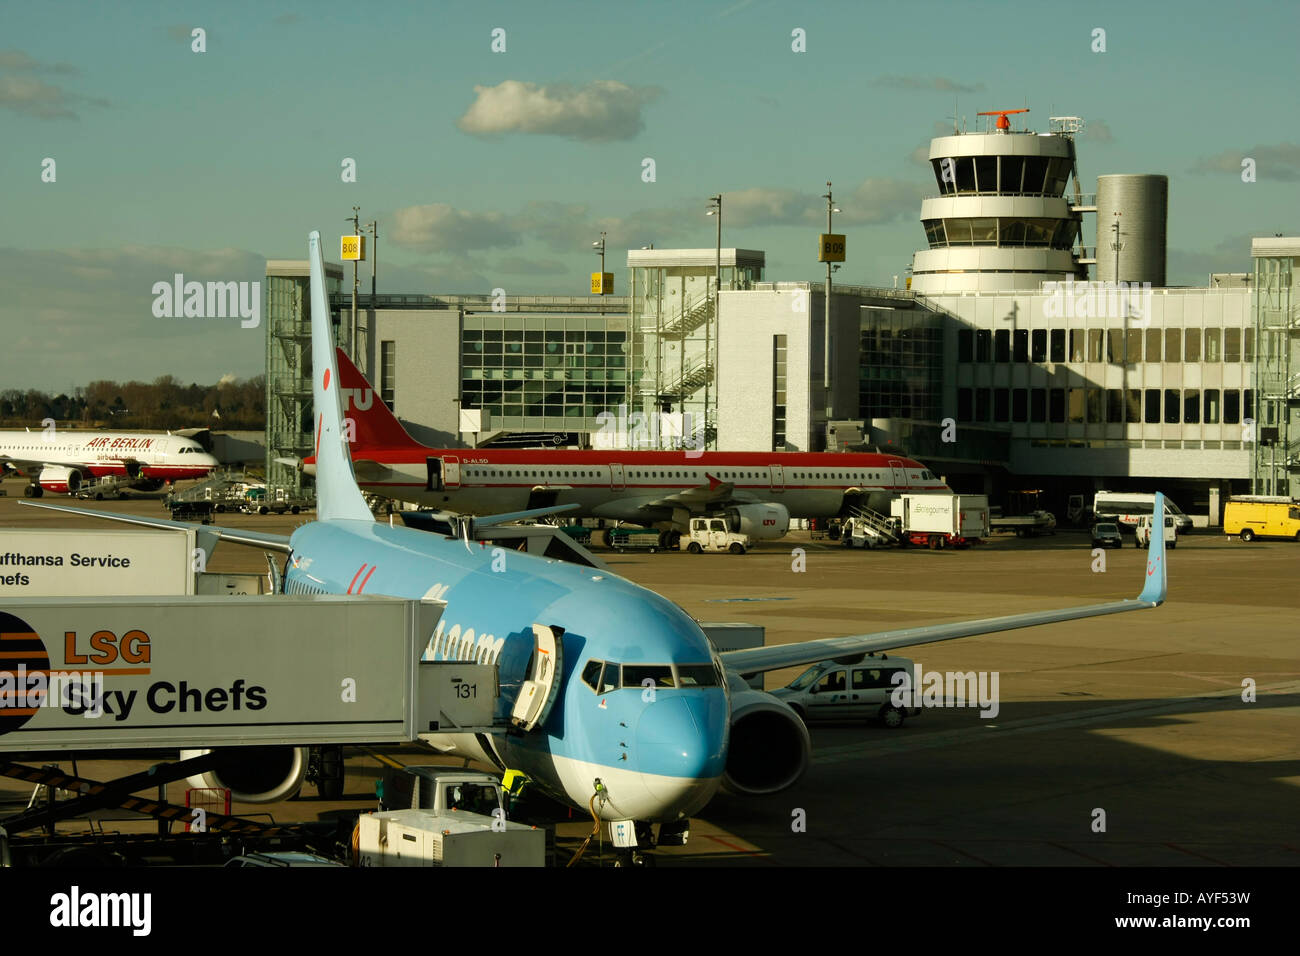 plane at Duesseldorf Airport NRW Germany - Stock Image